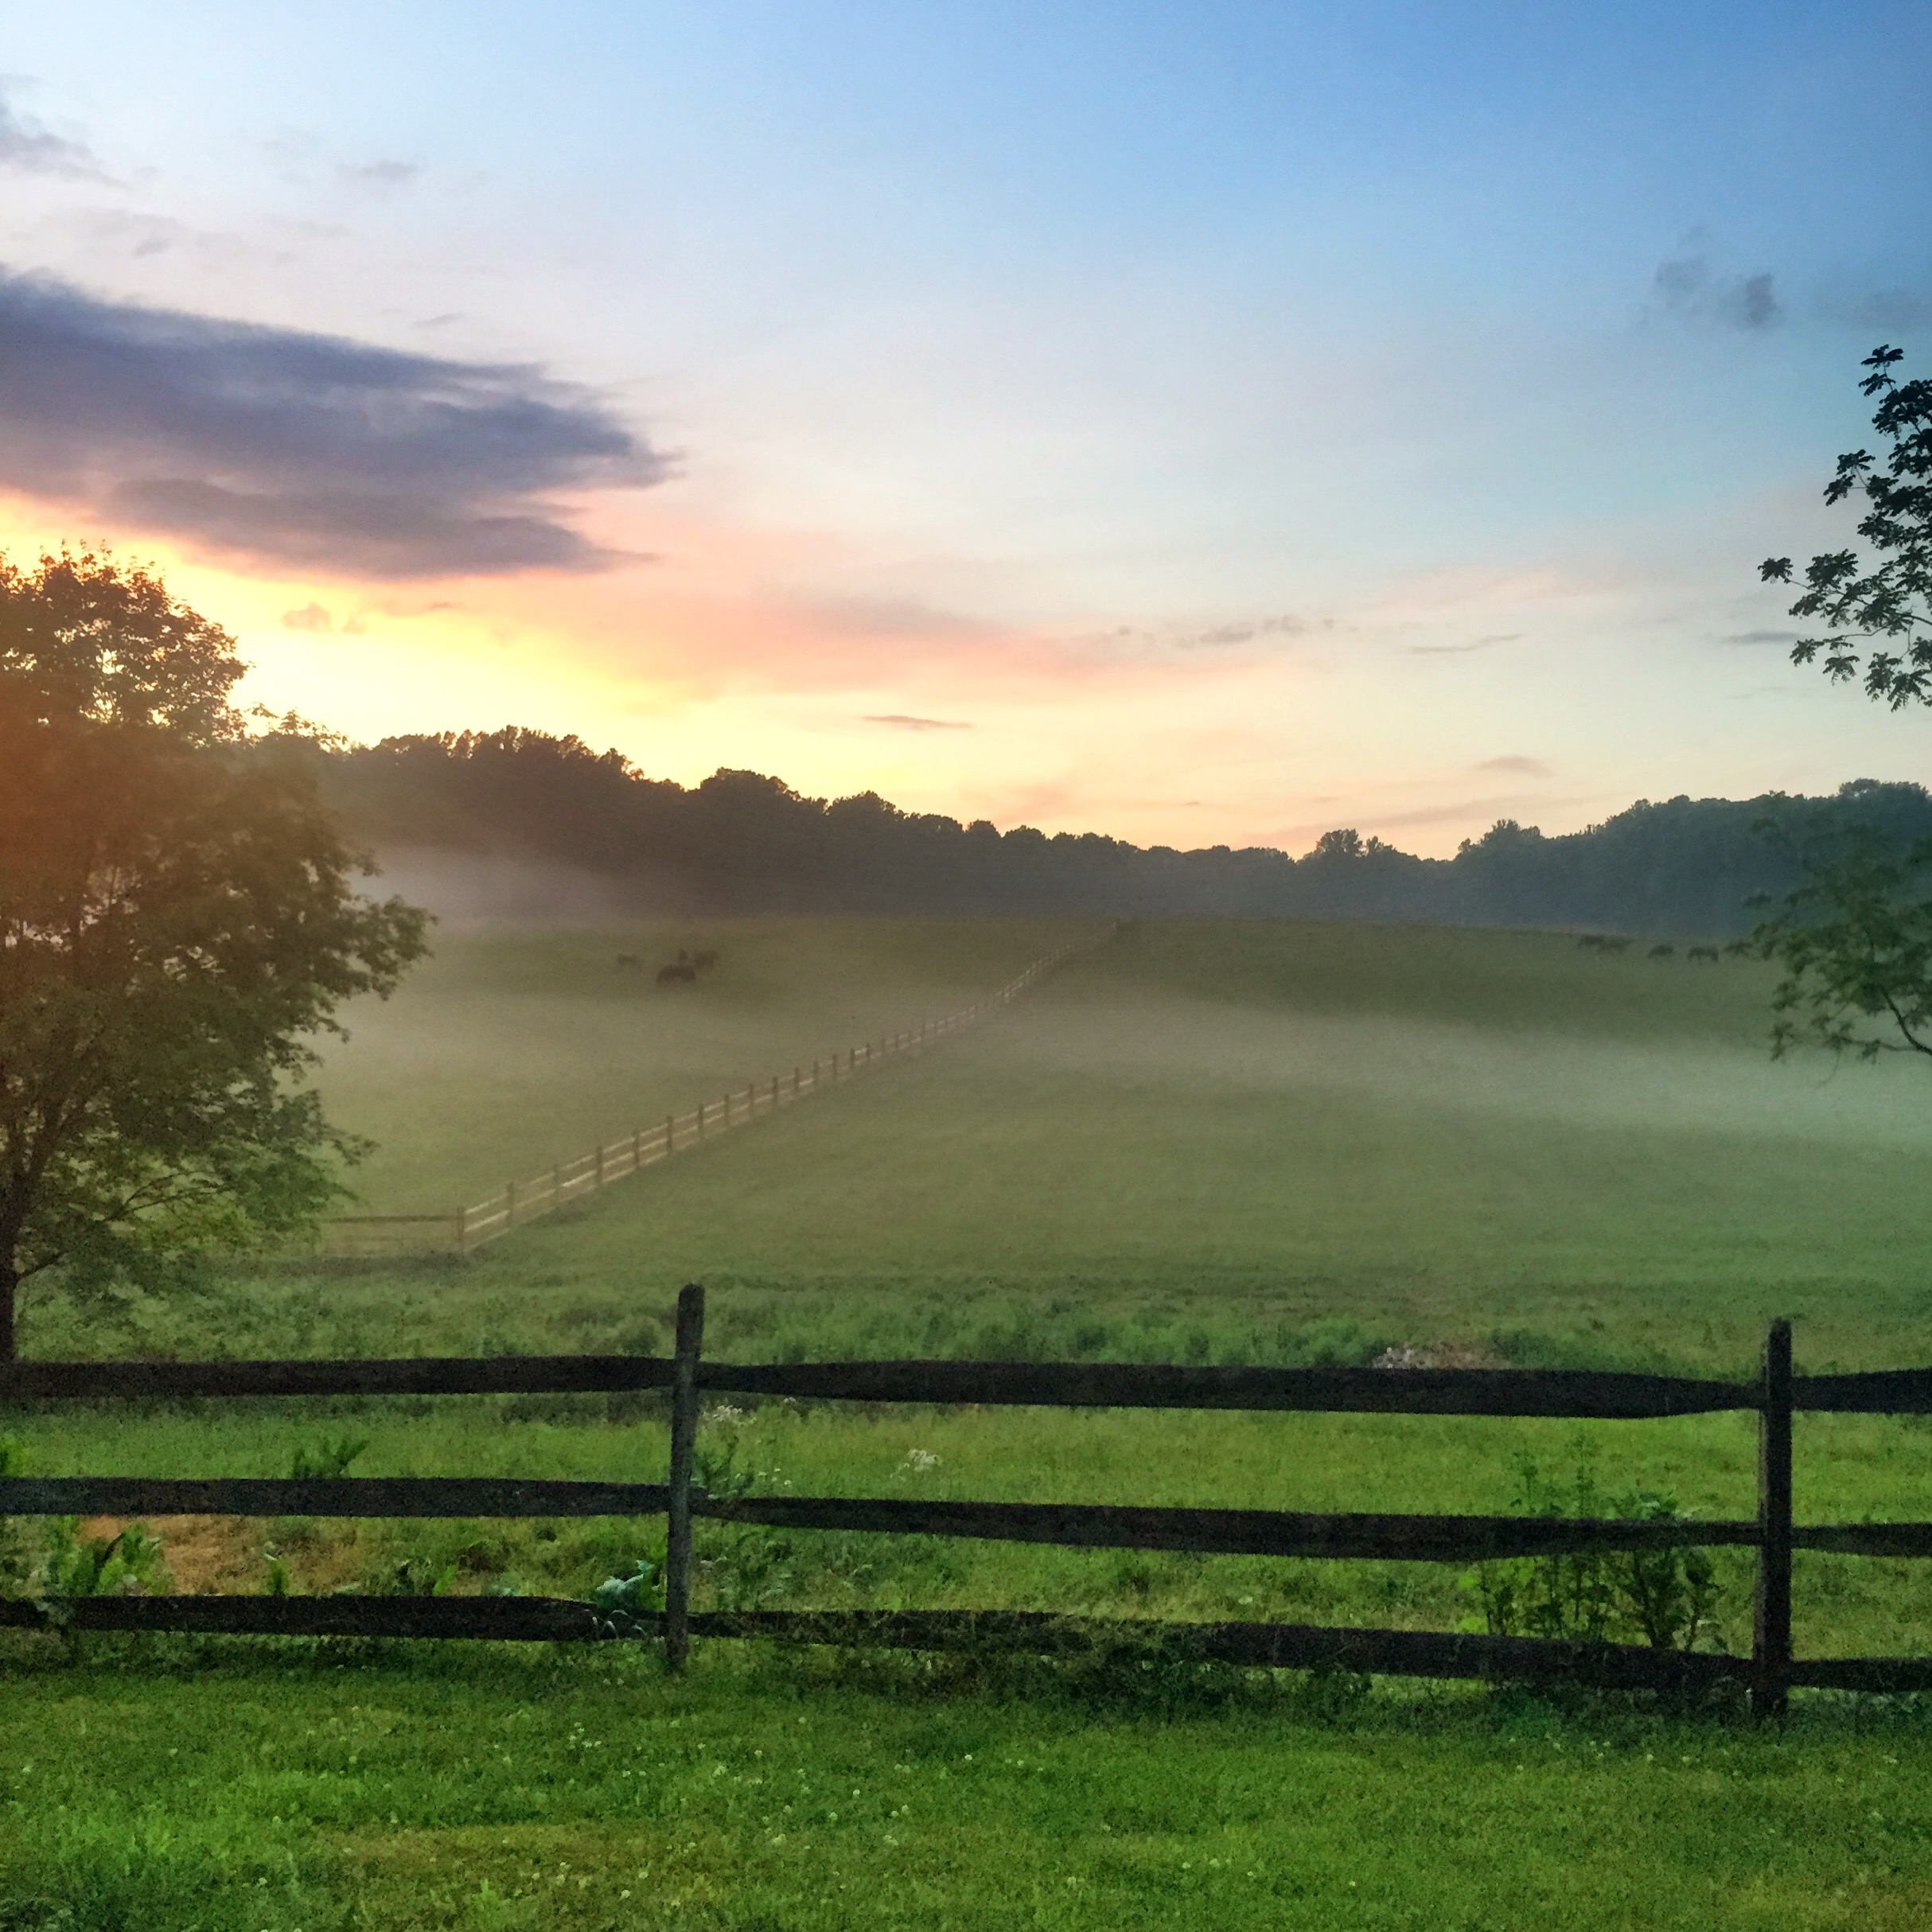 Morning mist in the north fields